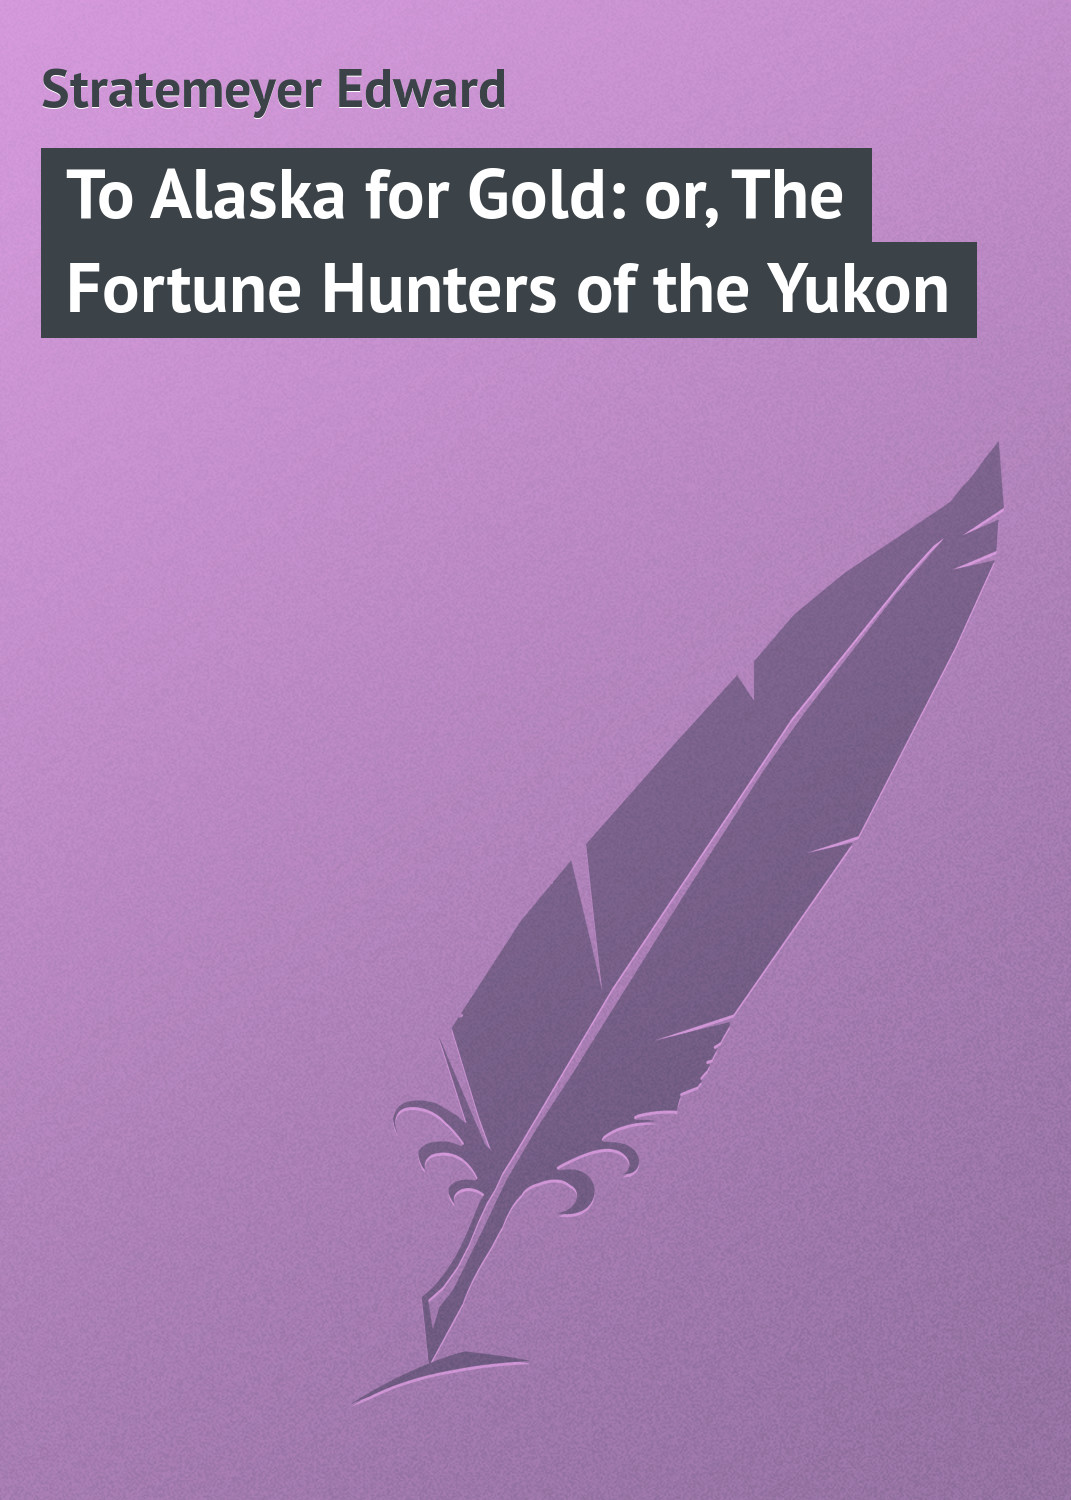 Stratemeyer Edward To Alaska for Gold: or, The Fortune Hunters of the Yukon